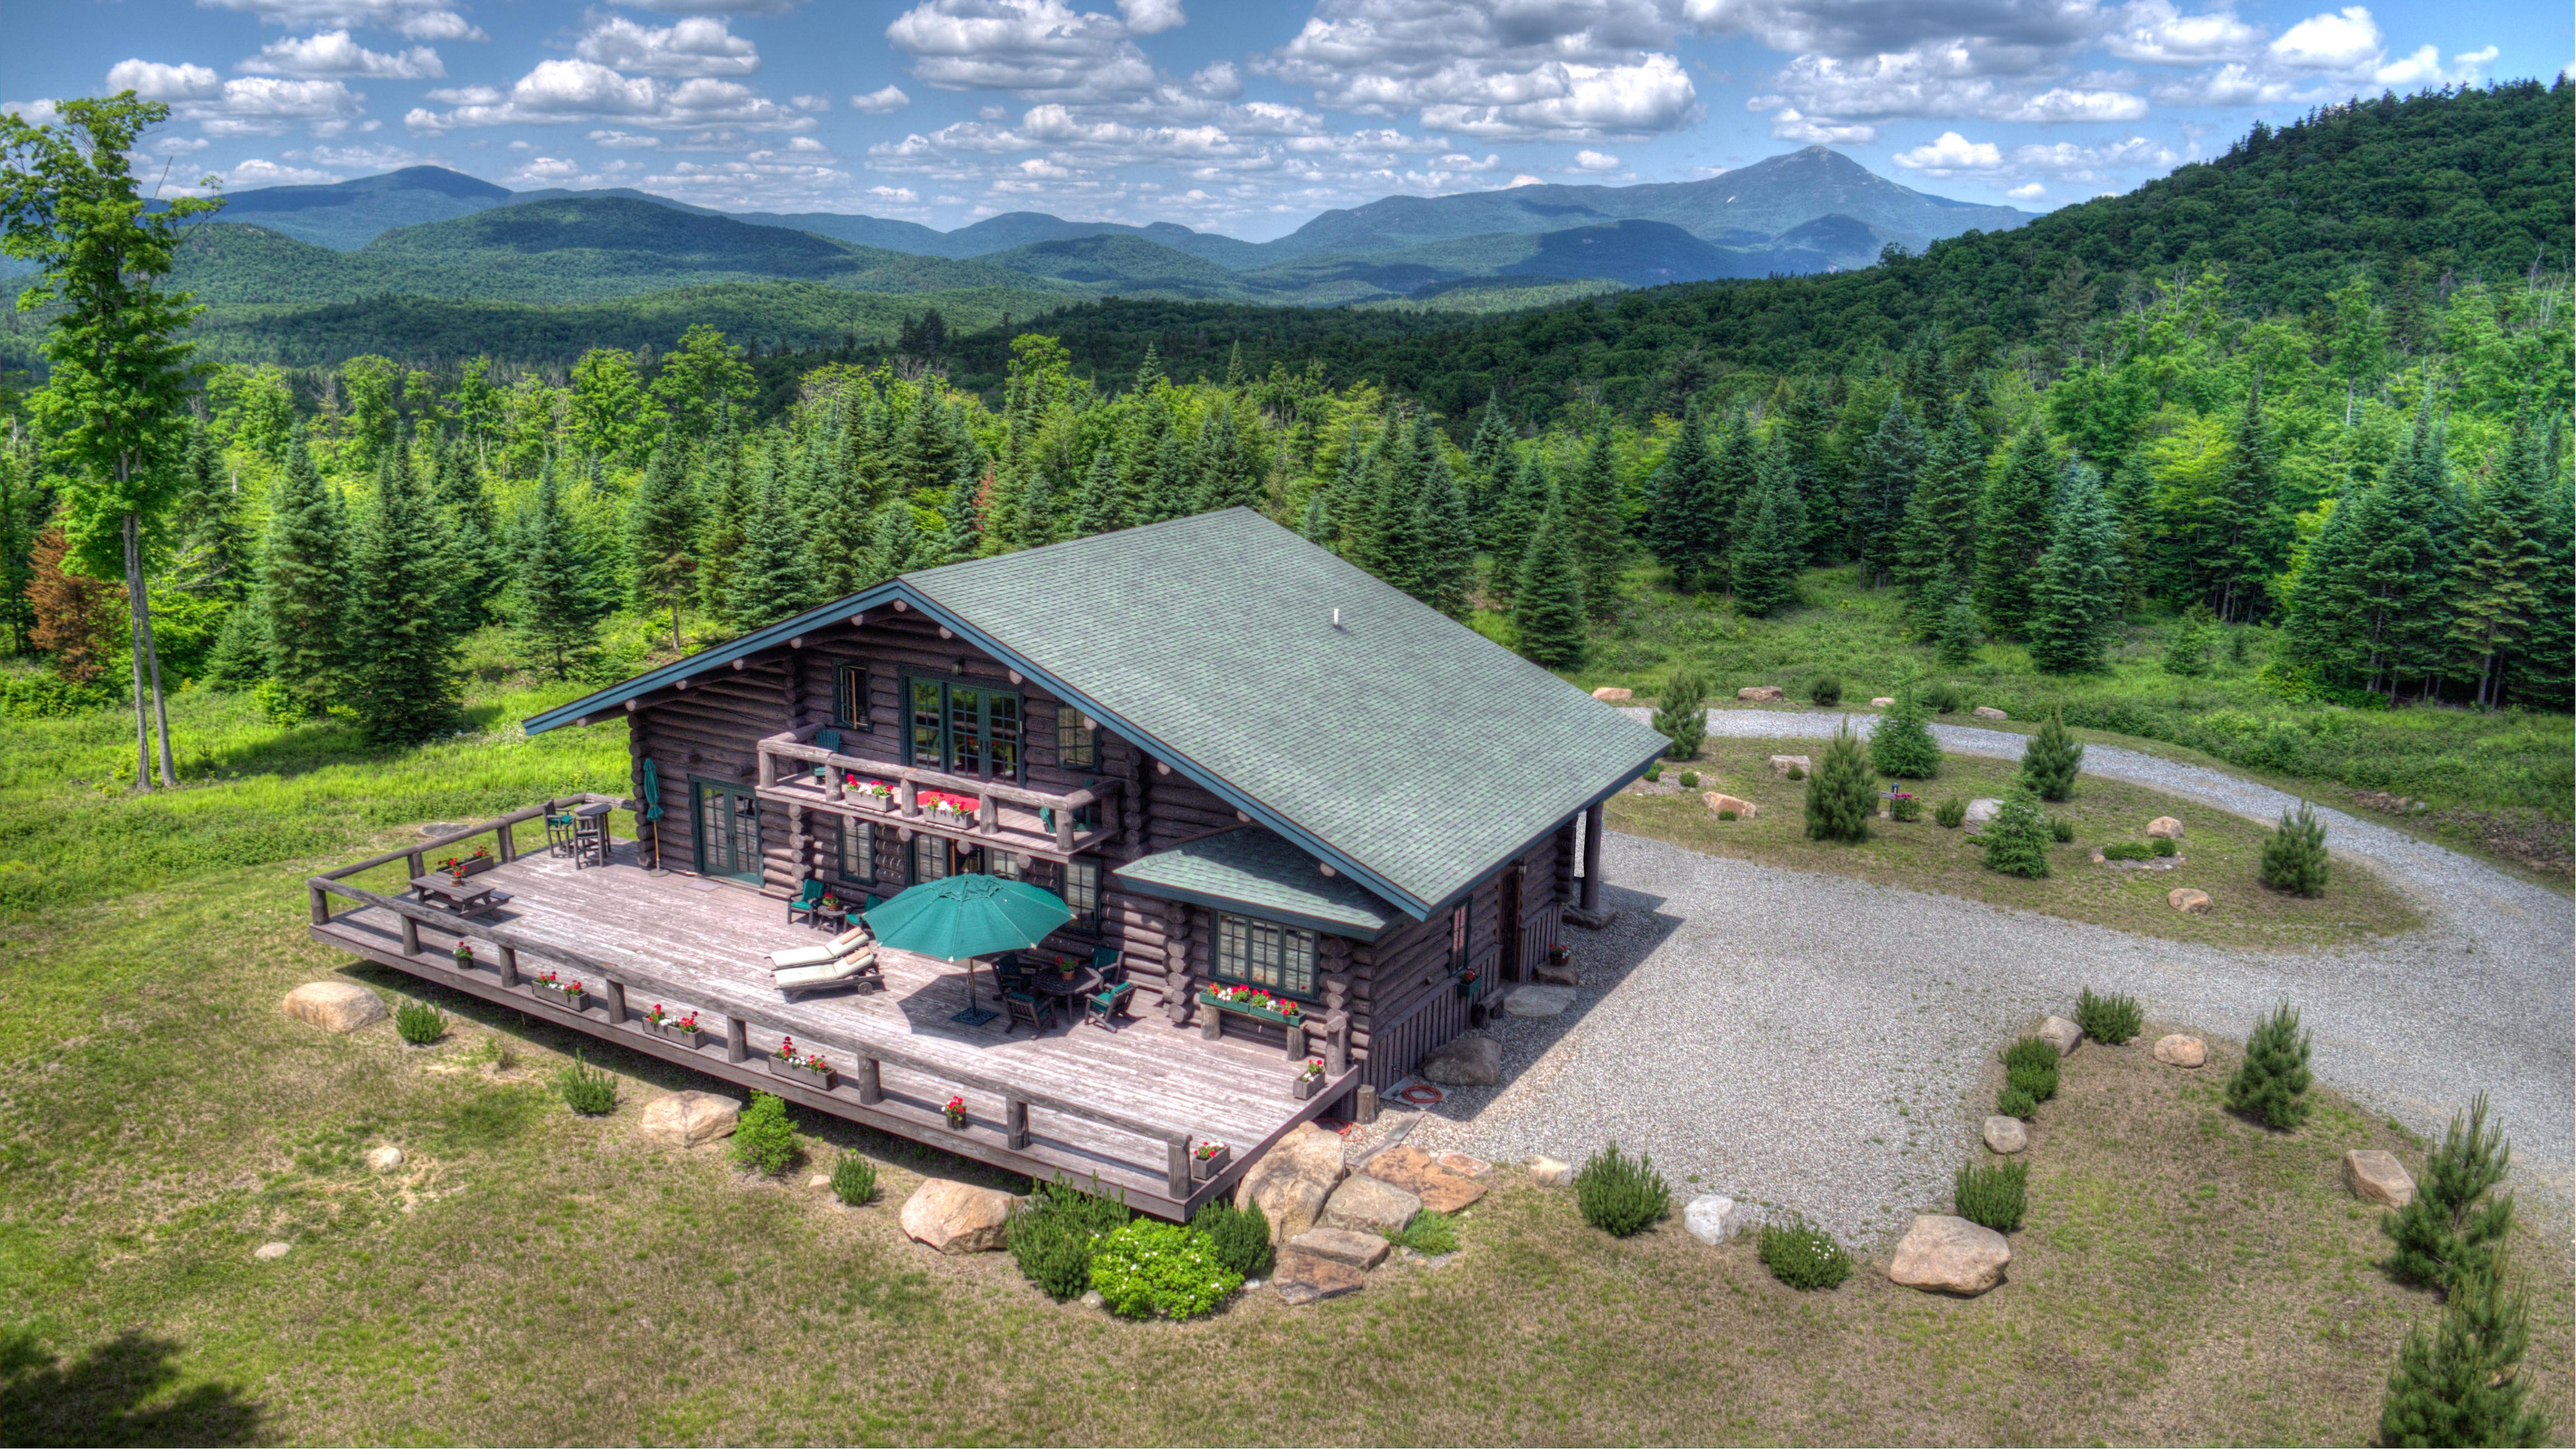 Adirondack Homes for Sale | Merrill L  Thomas, Inc  Real Estate